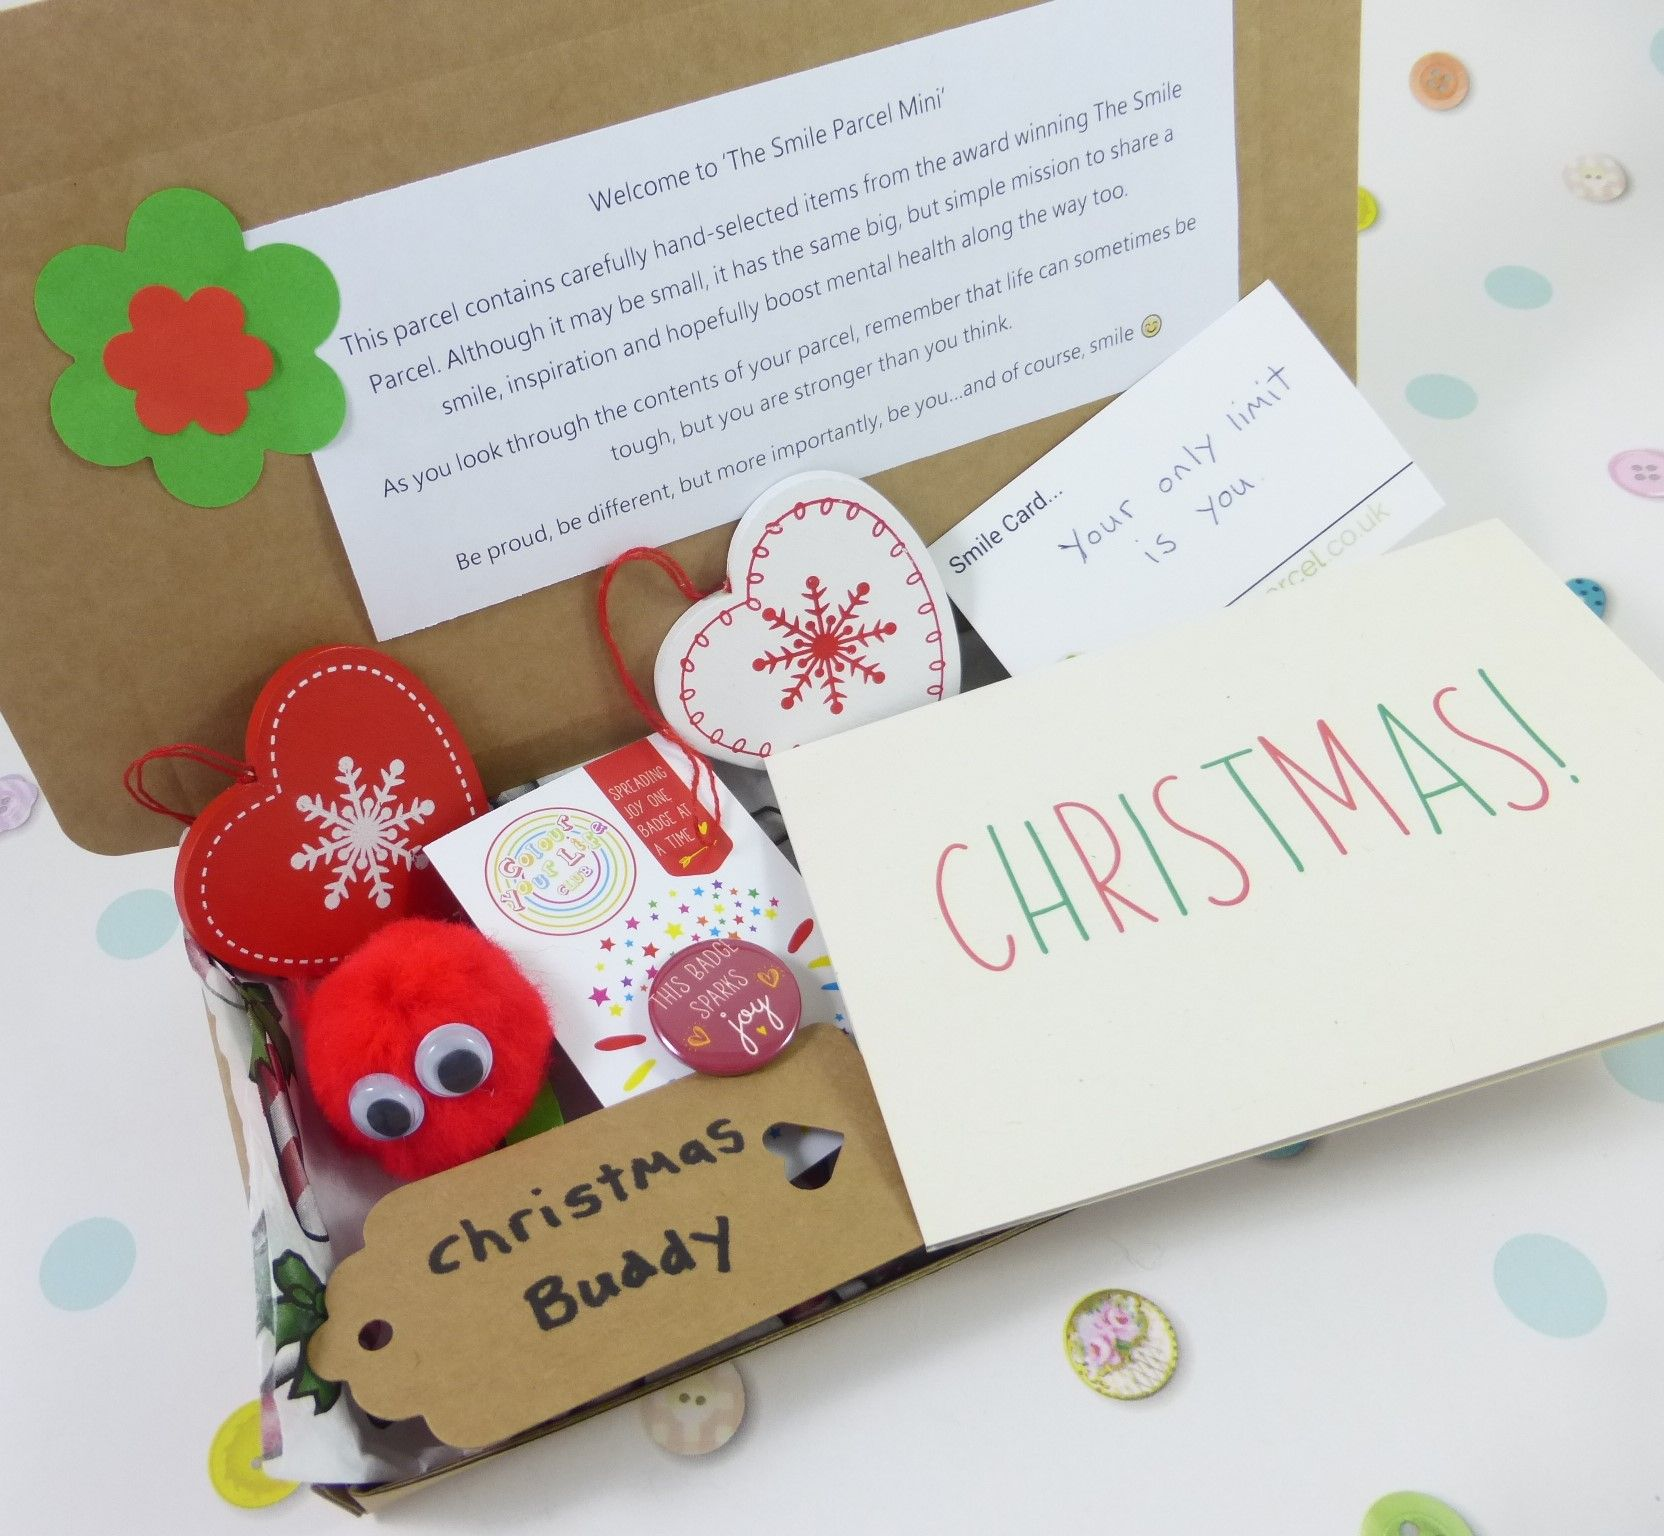 Christmas Hearts, Letterbox Friendly, Pick Me Up Gift – The Smile Parcel Mini Kind Shop